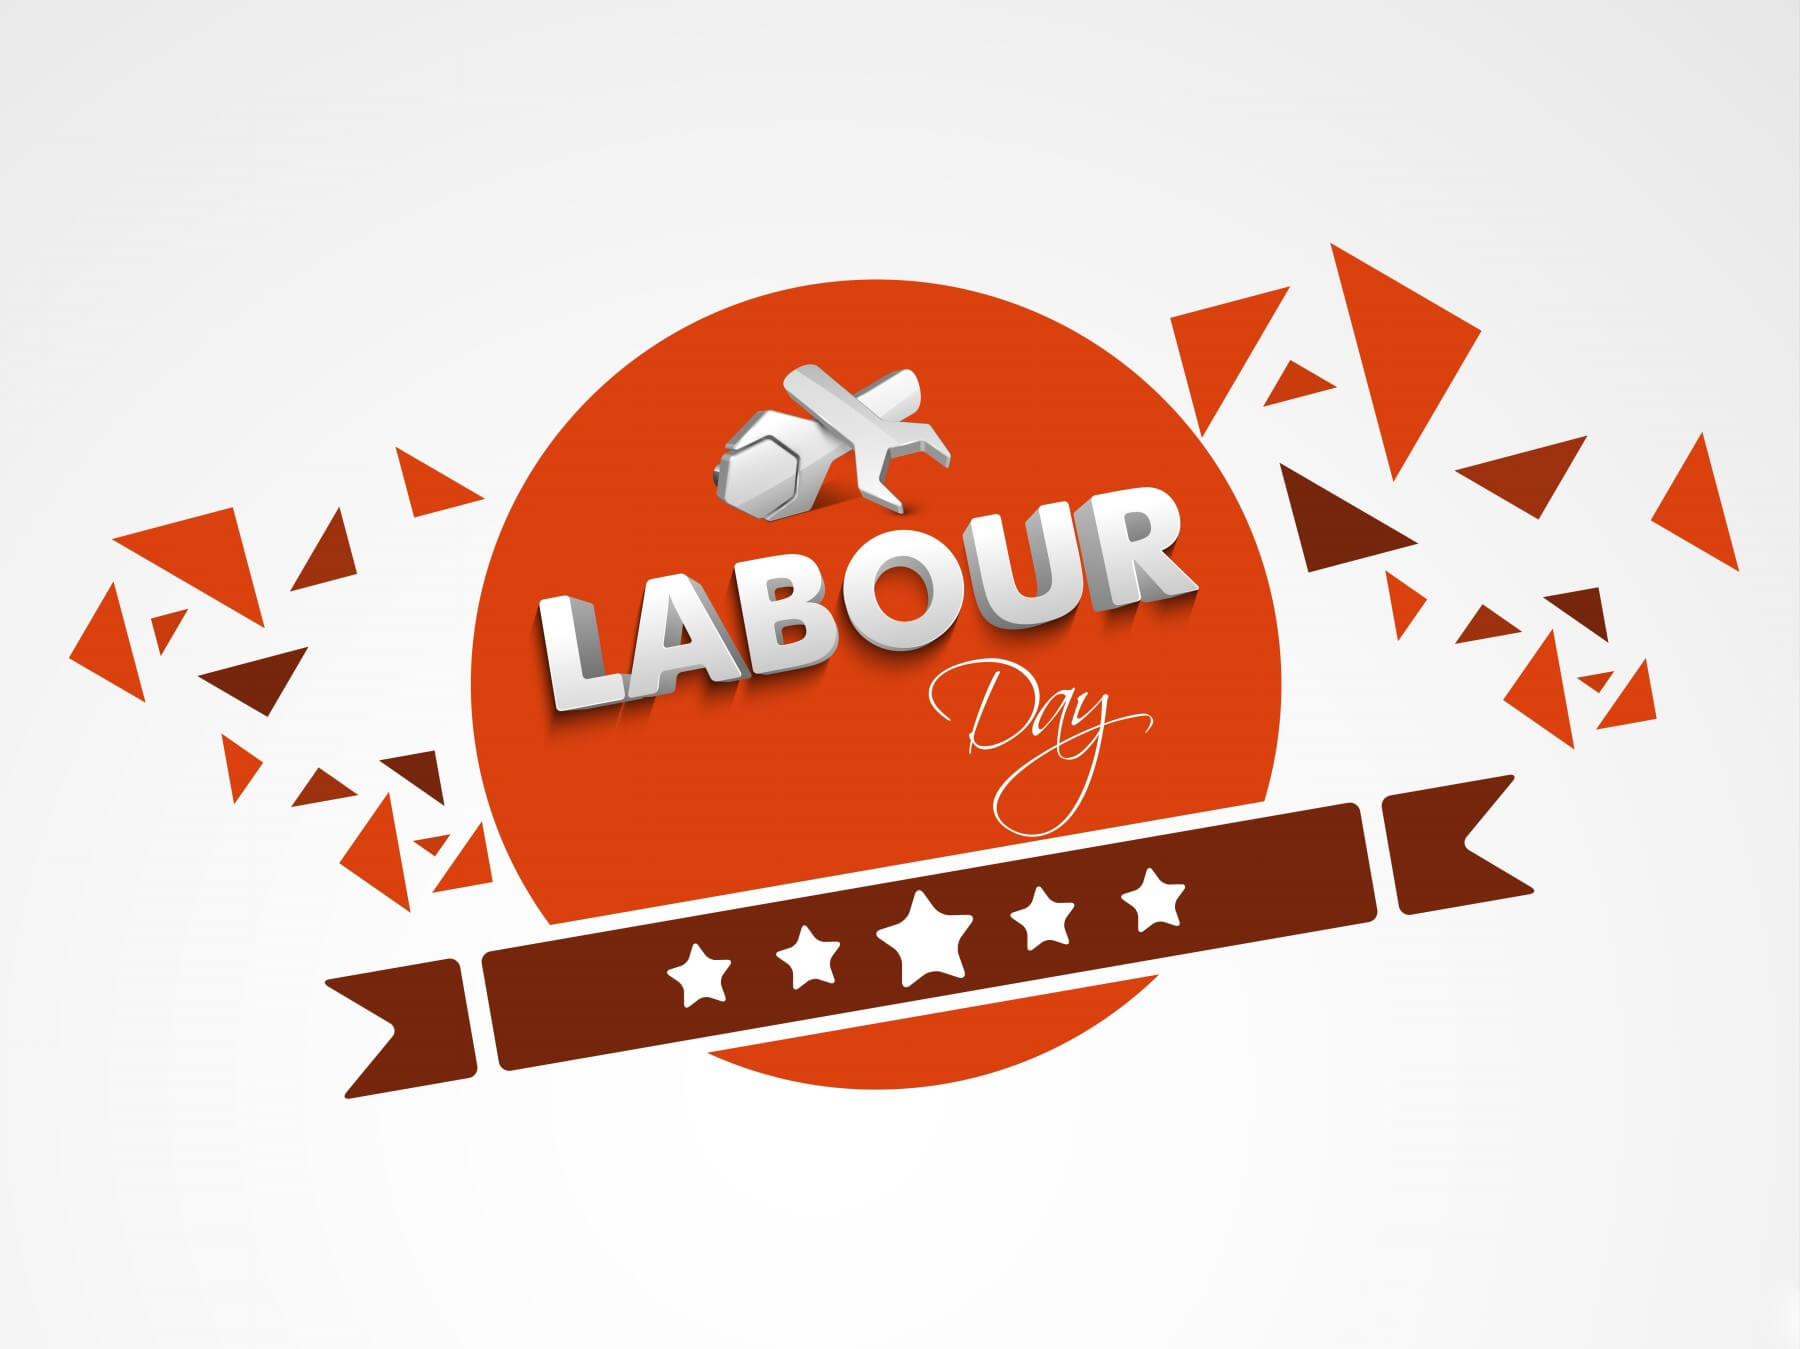 happy labour labor day sticker label design image